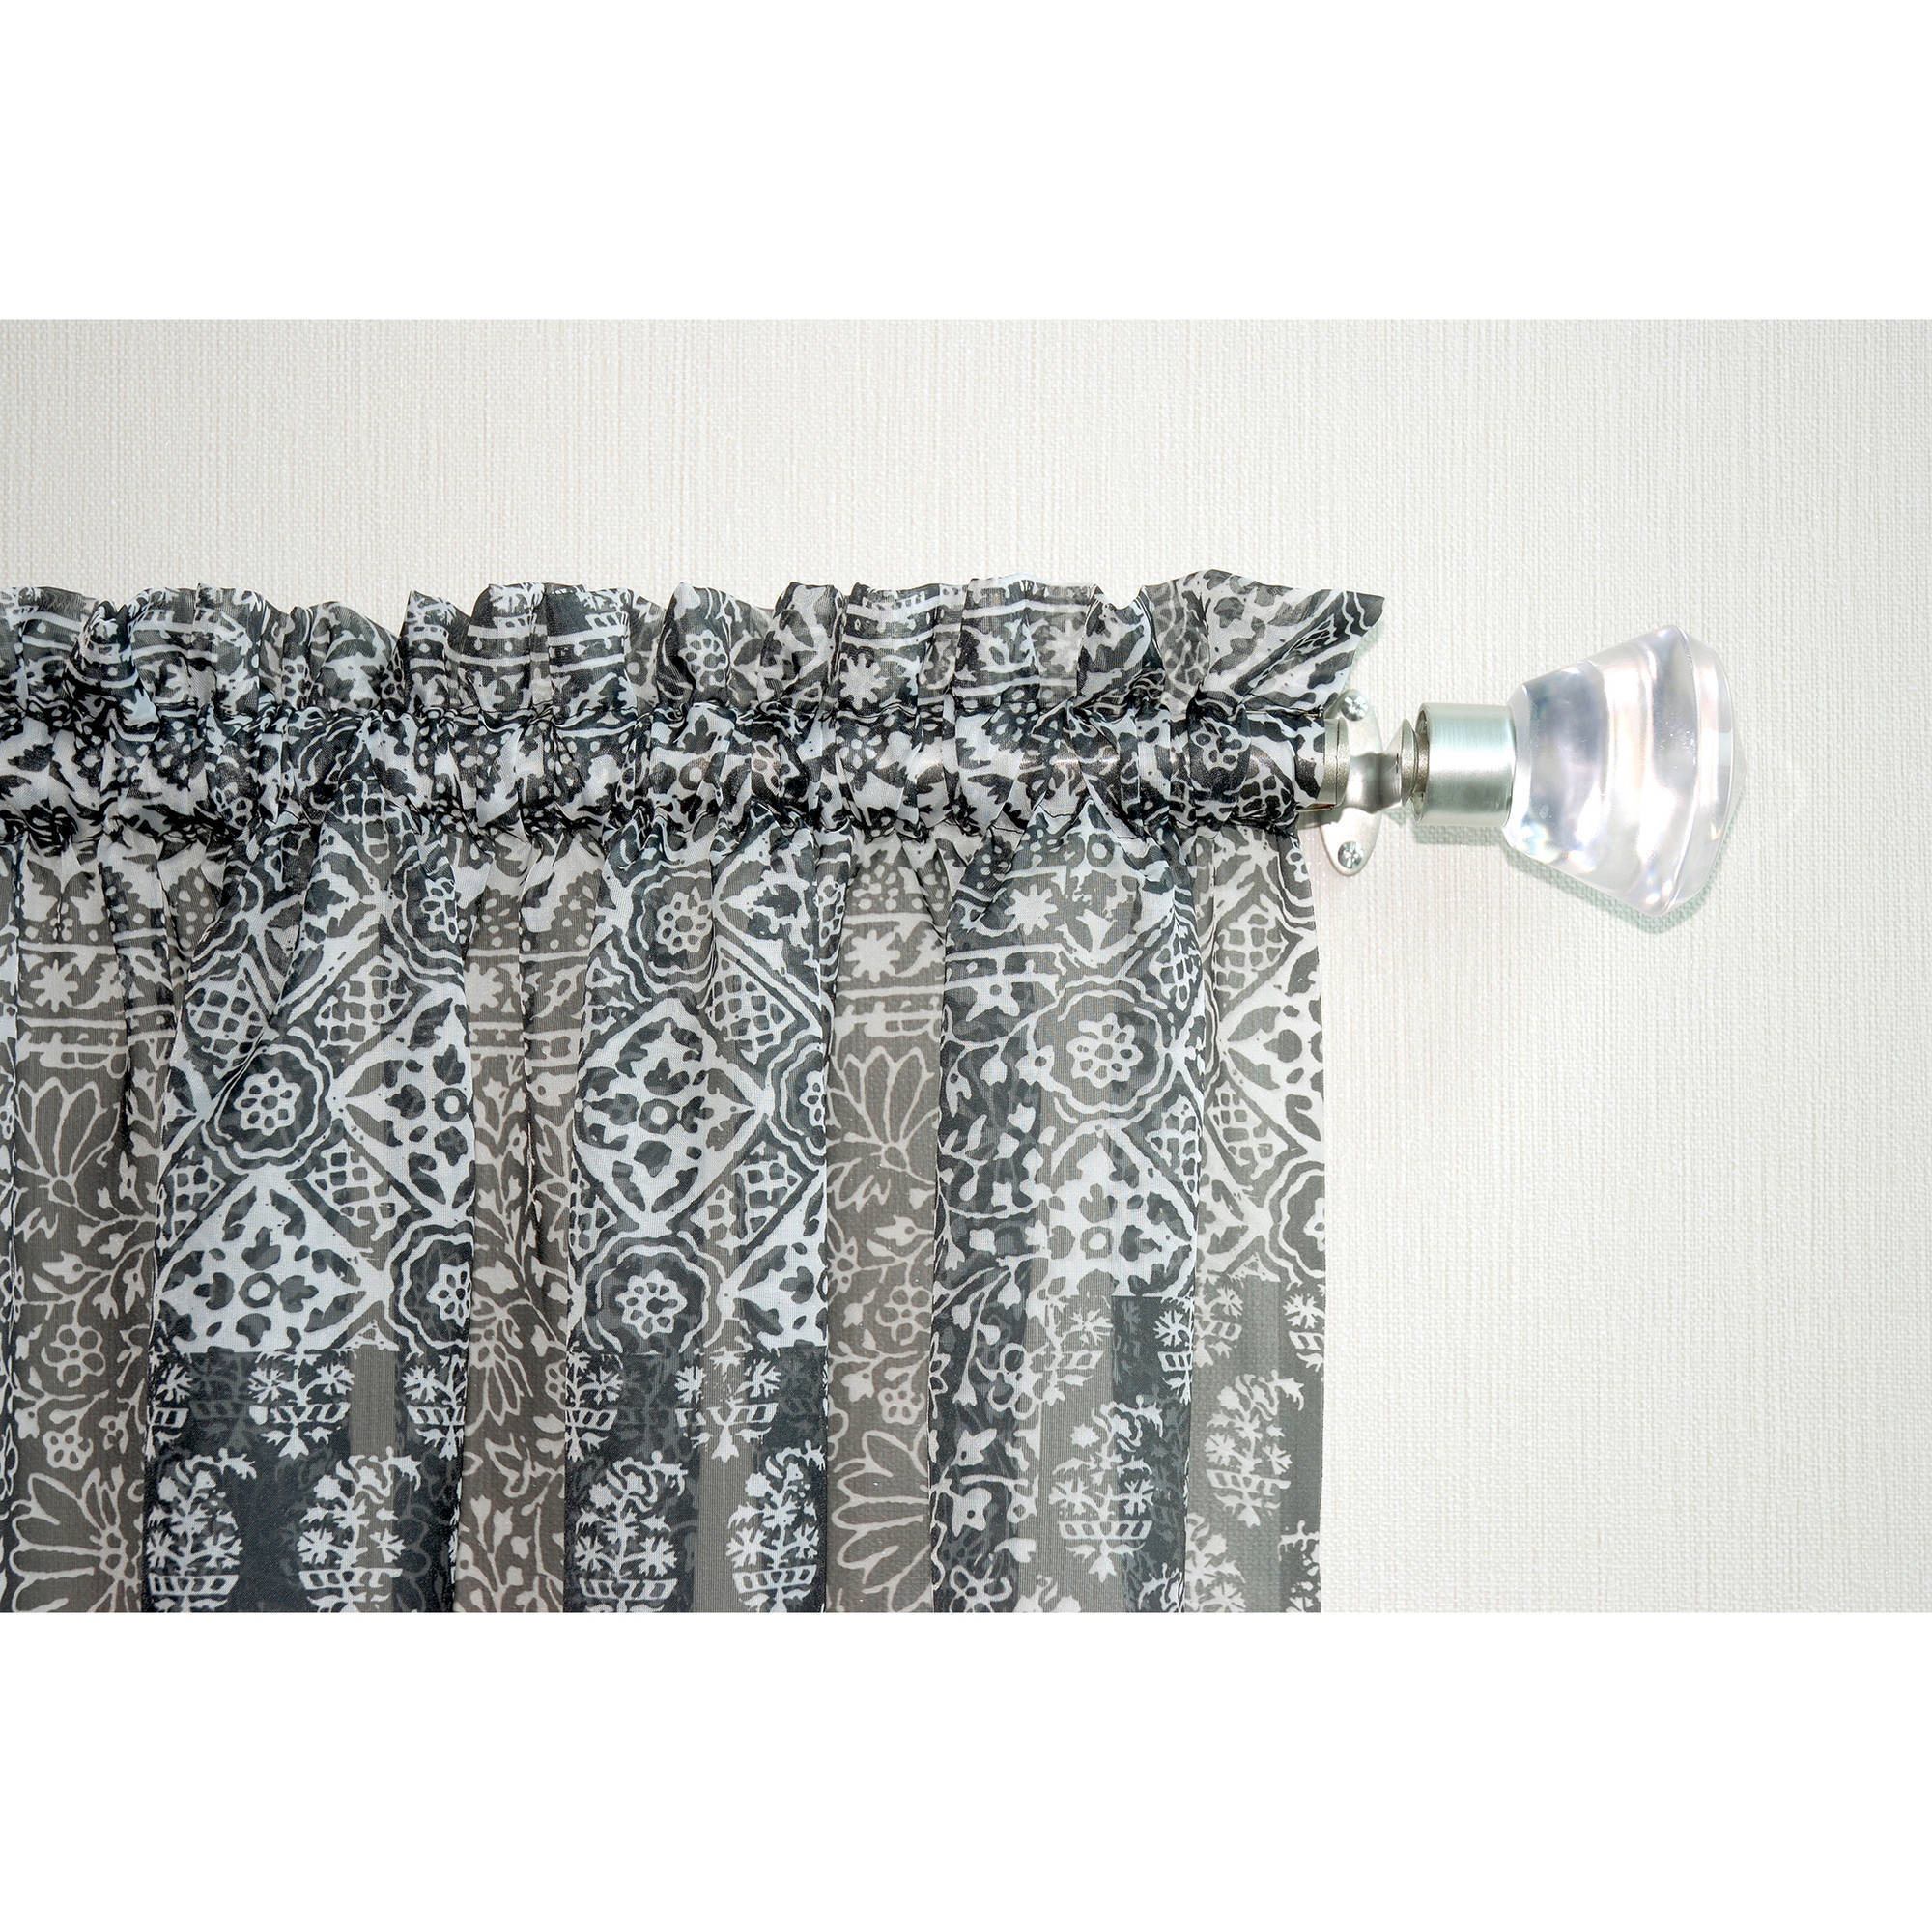 Mainstays Marjorie Sheer Voile Curtain Panel Walmartcom - Chocolate coral and gold shower curtain